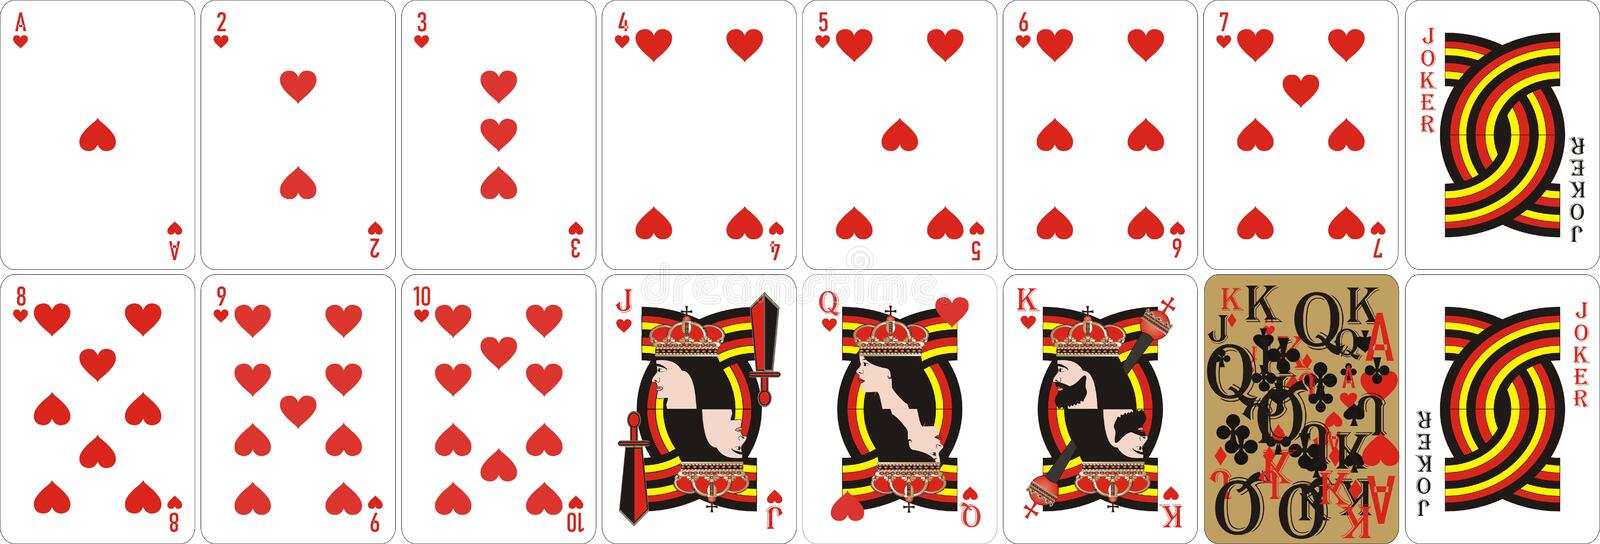 Playing cards for rummy and Cassino. Cards for playing for fun and gambling.Suitable first of all for poker. Original design. vector file available stock illustration